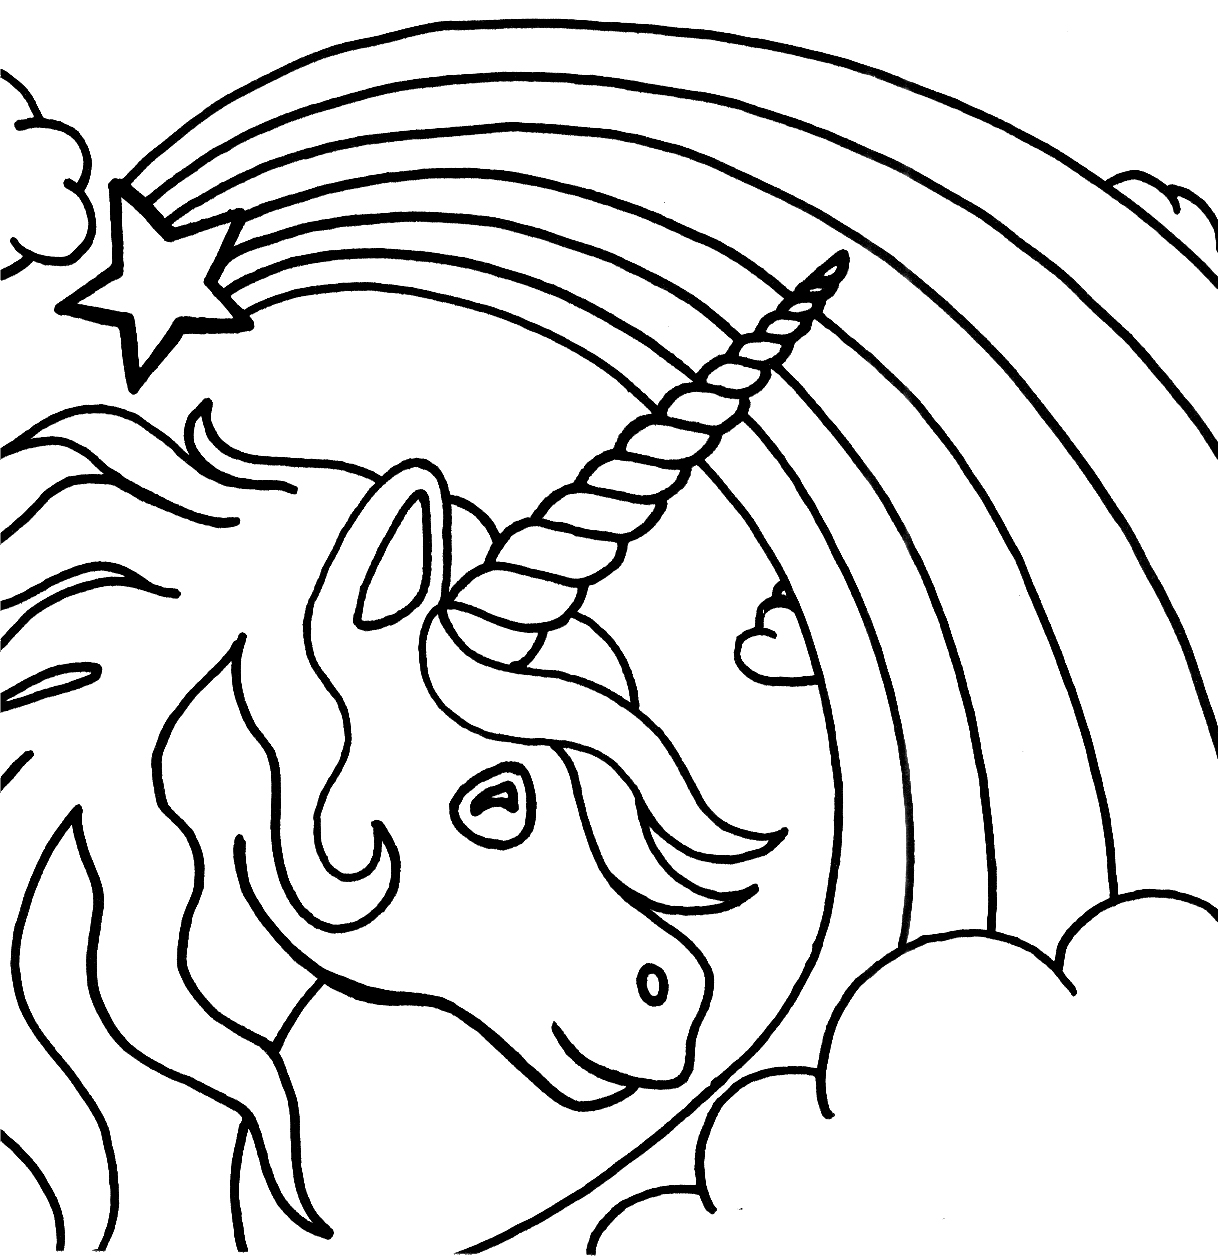 unicorn coloring pages for kids - Colouring Pages Print